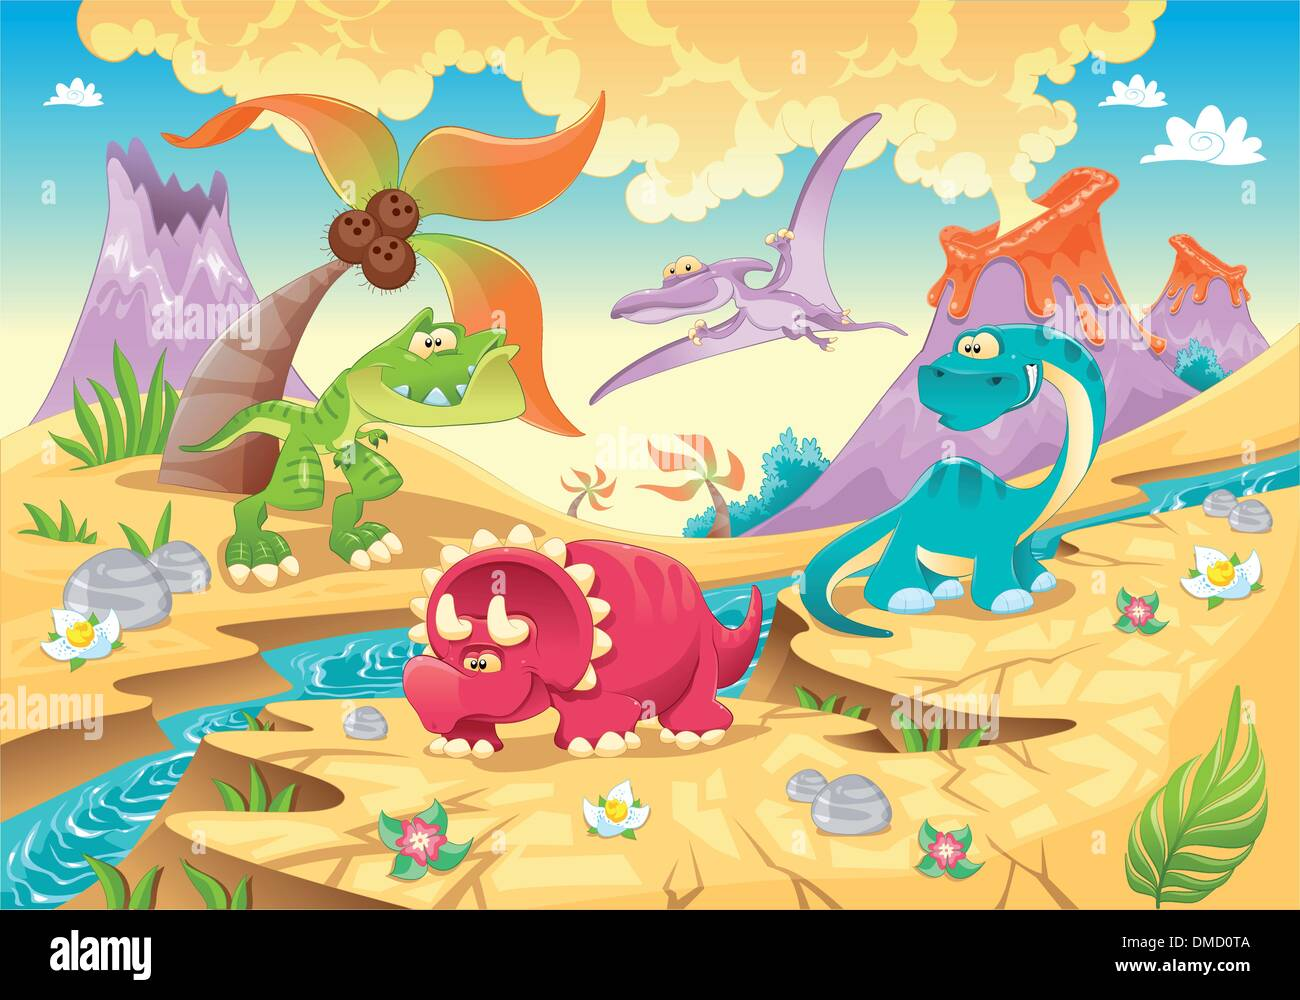 Dinosaurs Family with background. - Stock Image